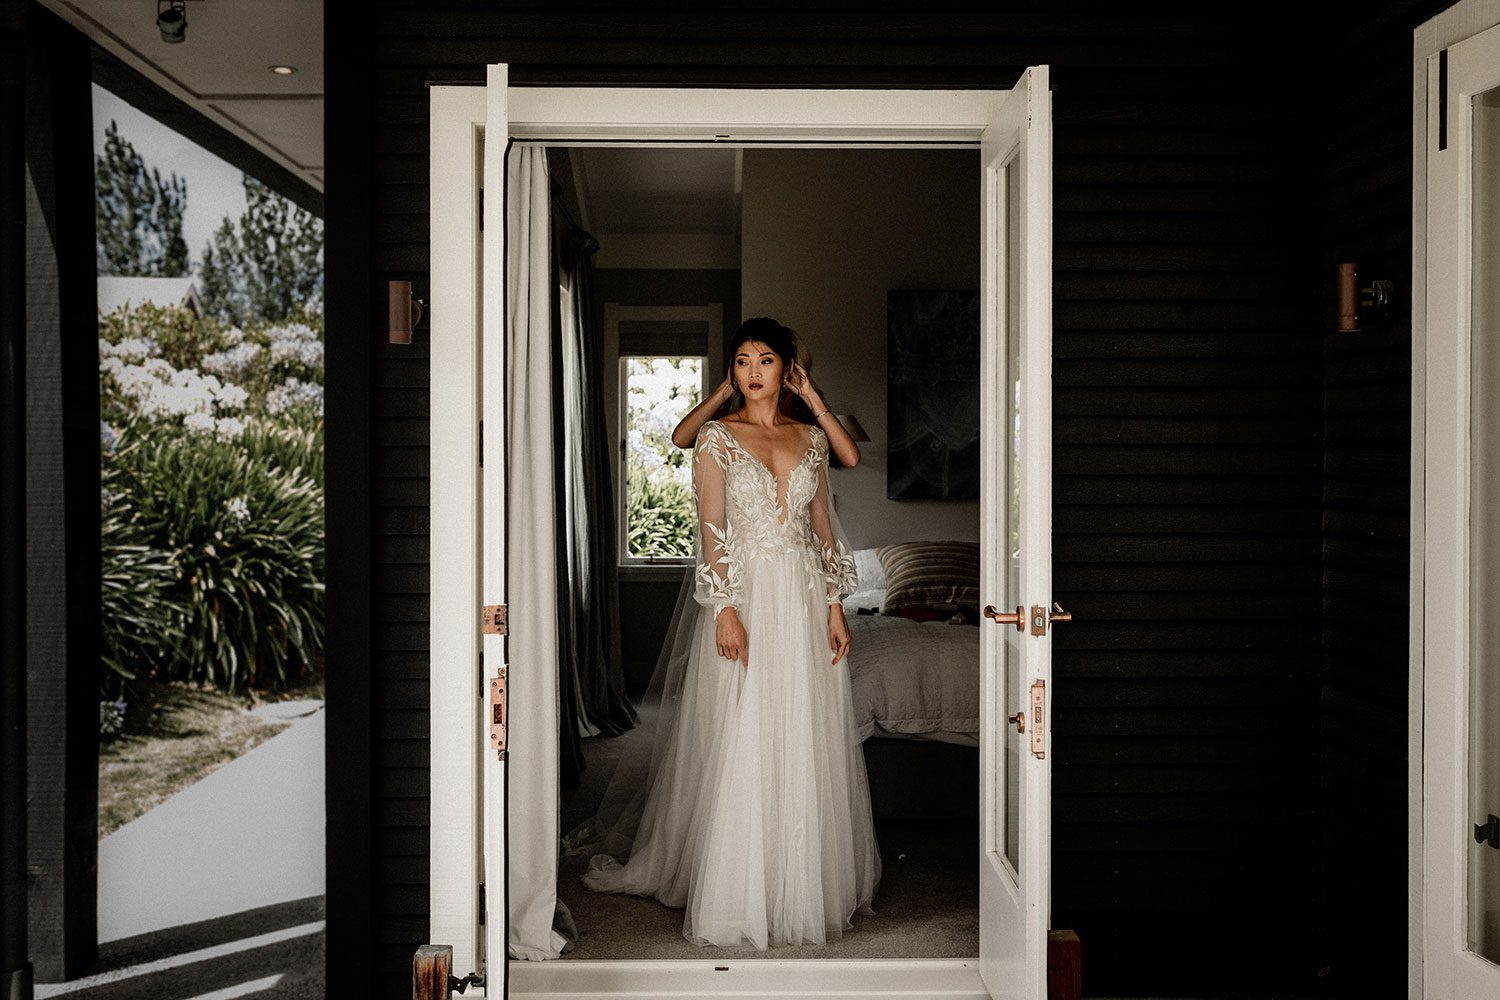 Bride wearing bespoke designer wedding dress by Vinka Bridal Boutique NZ, adorned with delicate applique lace and puffed sleeves - in doorway